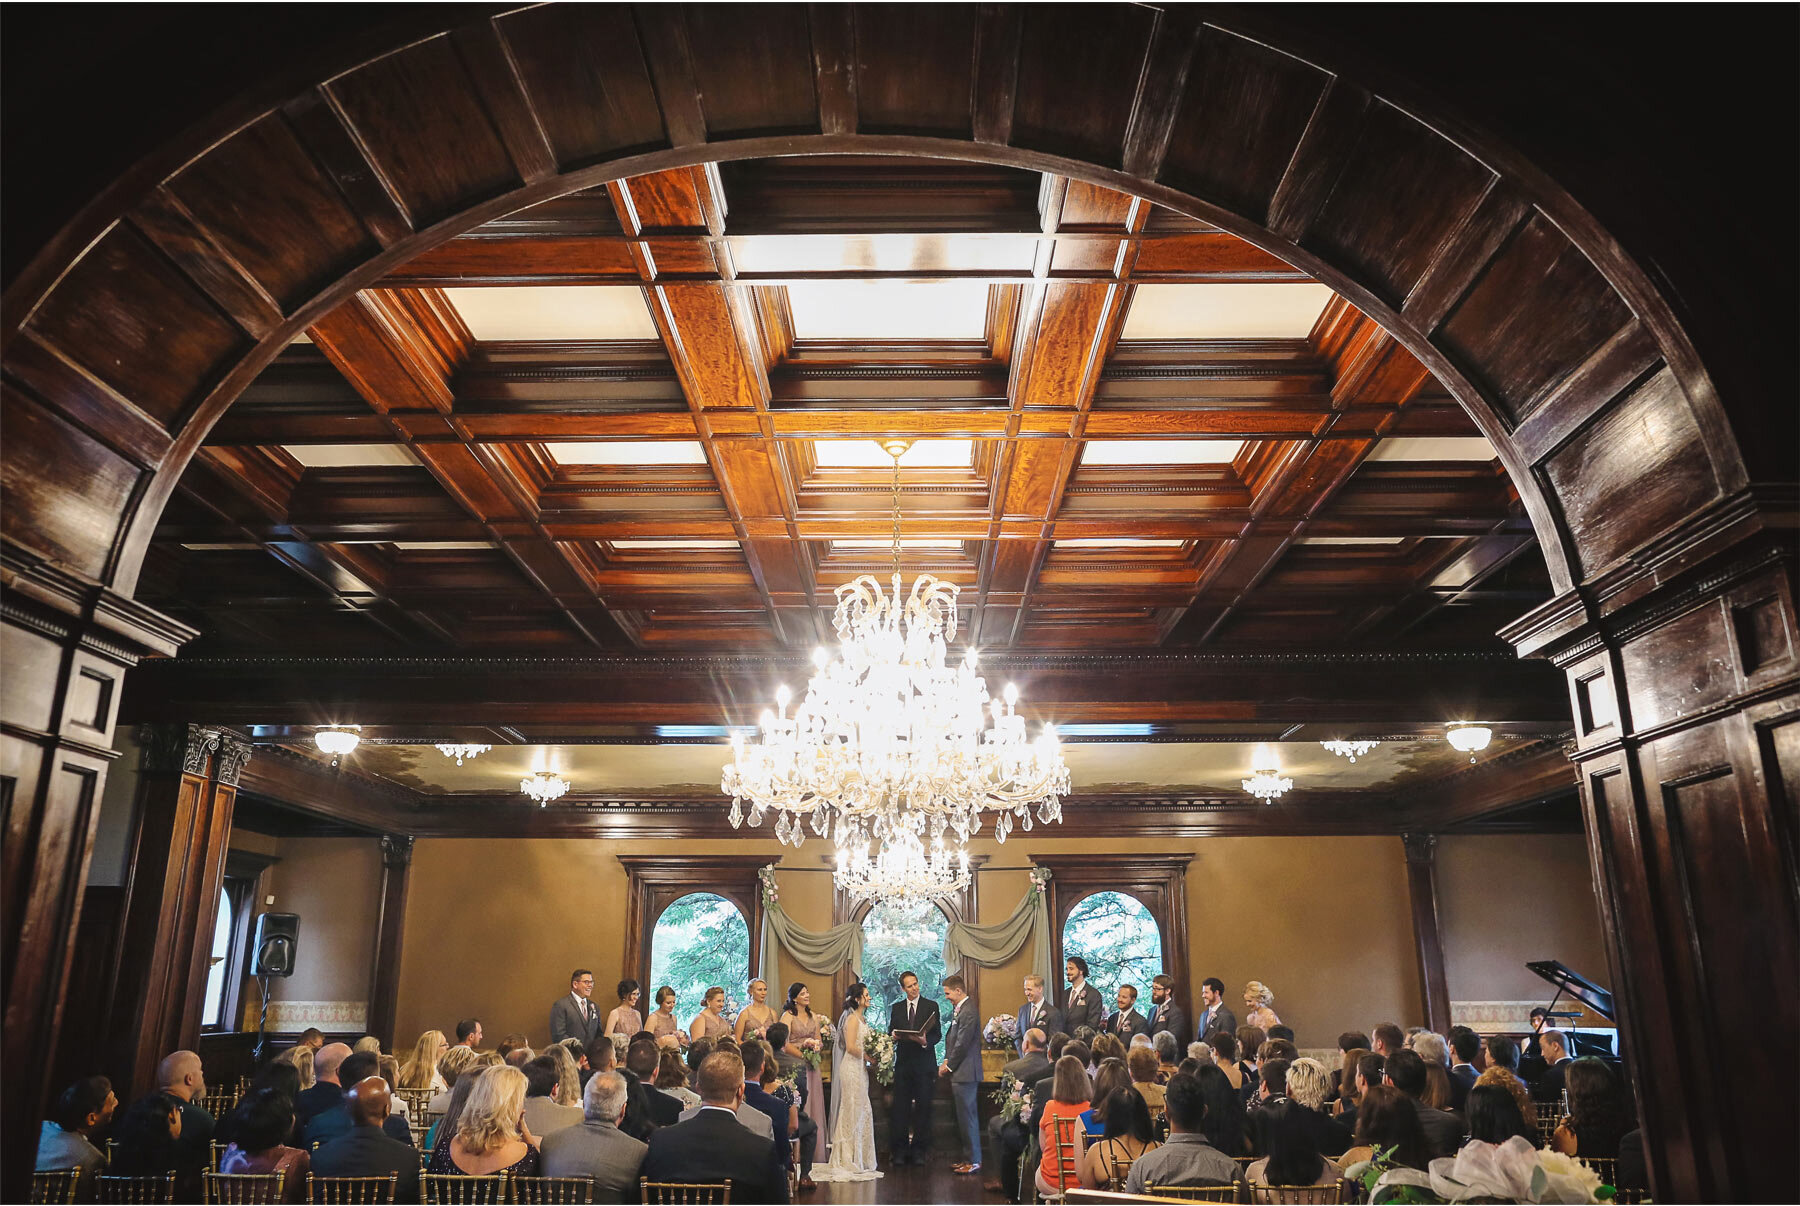 10-Wedding-by-Vick-Photography-Minneapolis-Minnesota-Semple-Mansion-Historic-Venue-Interior-Ceremony-Kaitlyn-and-Nate.jpg